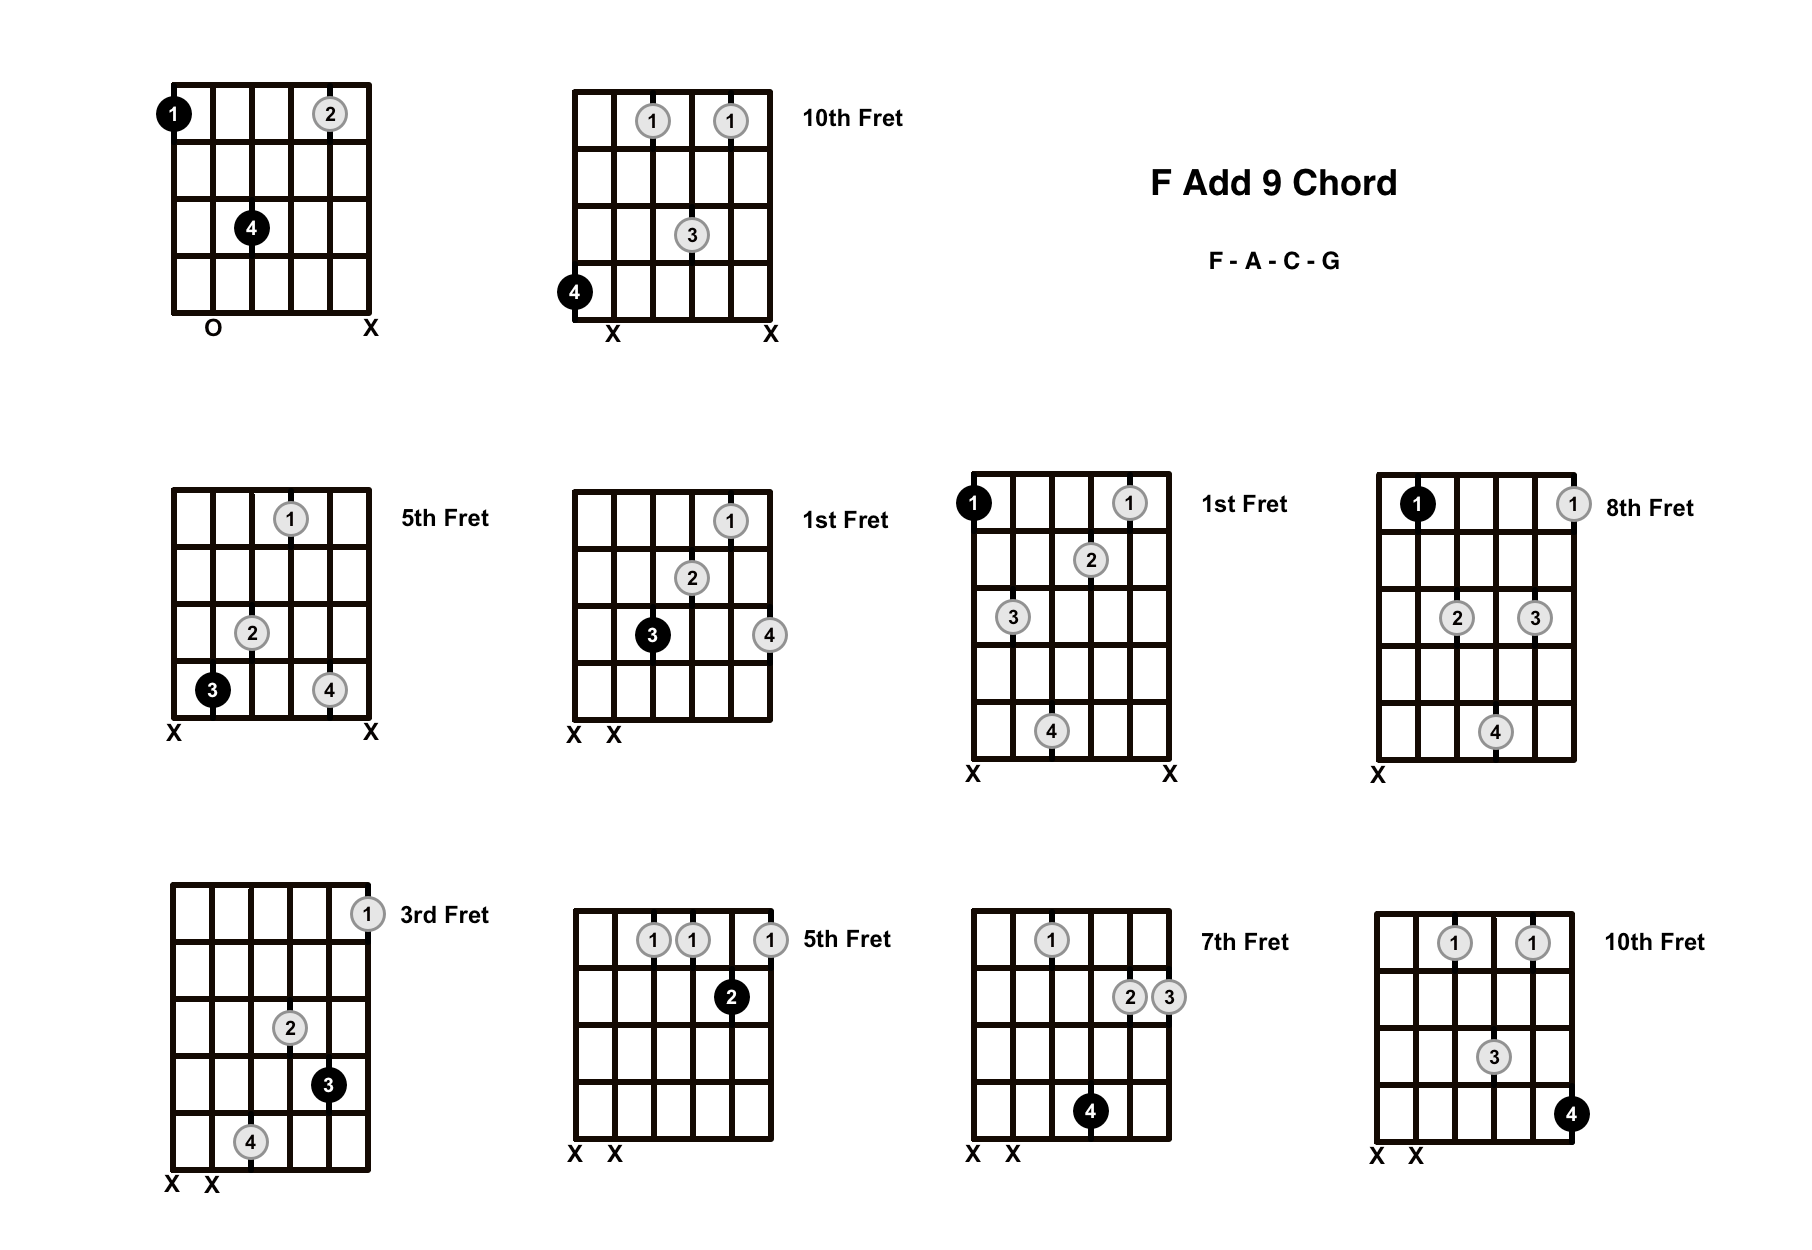 F Add 9 Chord On The Guitar (F Add 9/F Add 2) – Diagrams, Finger Positions and Theory